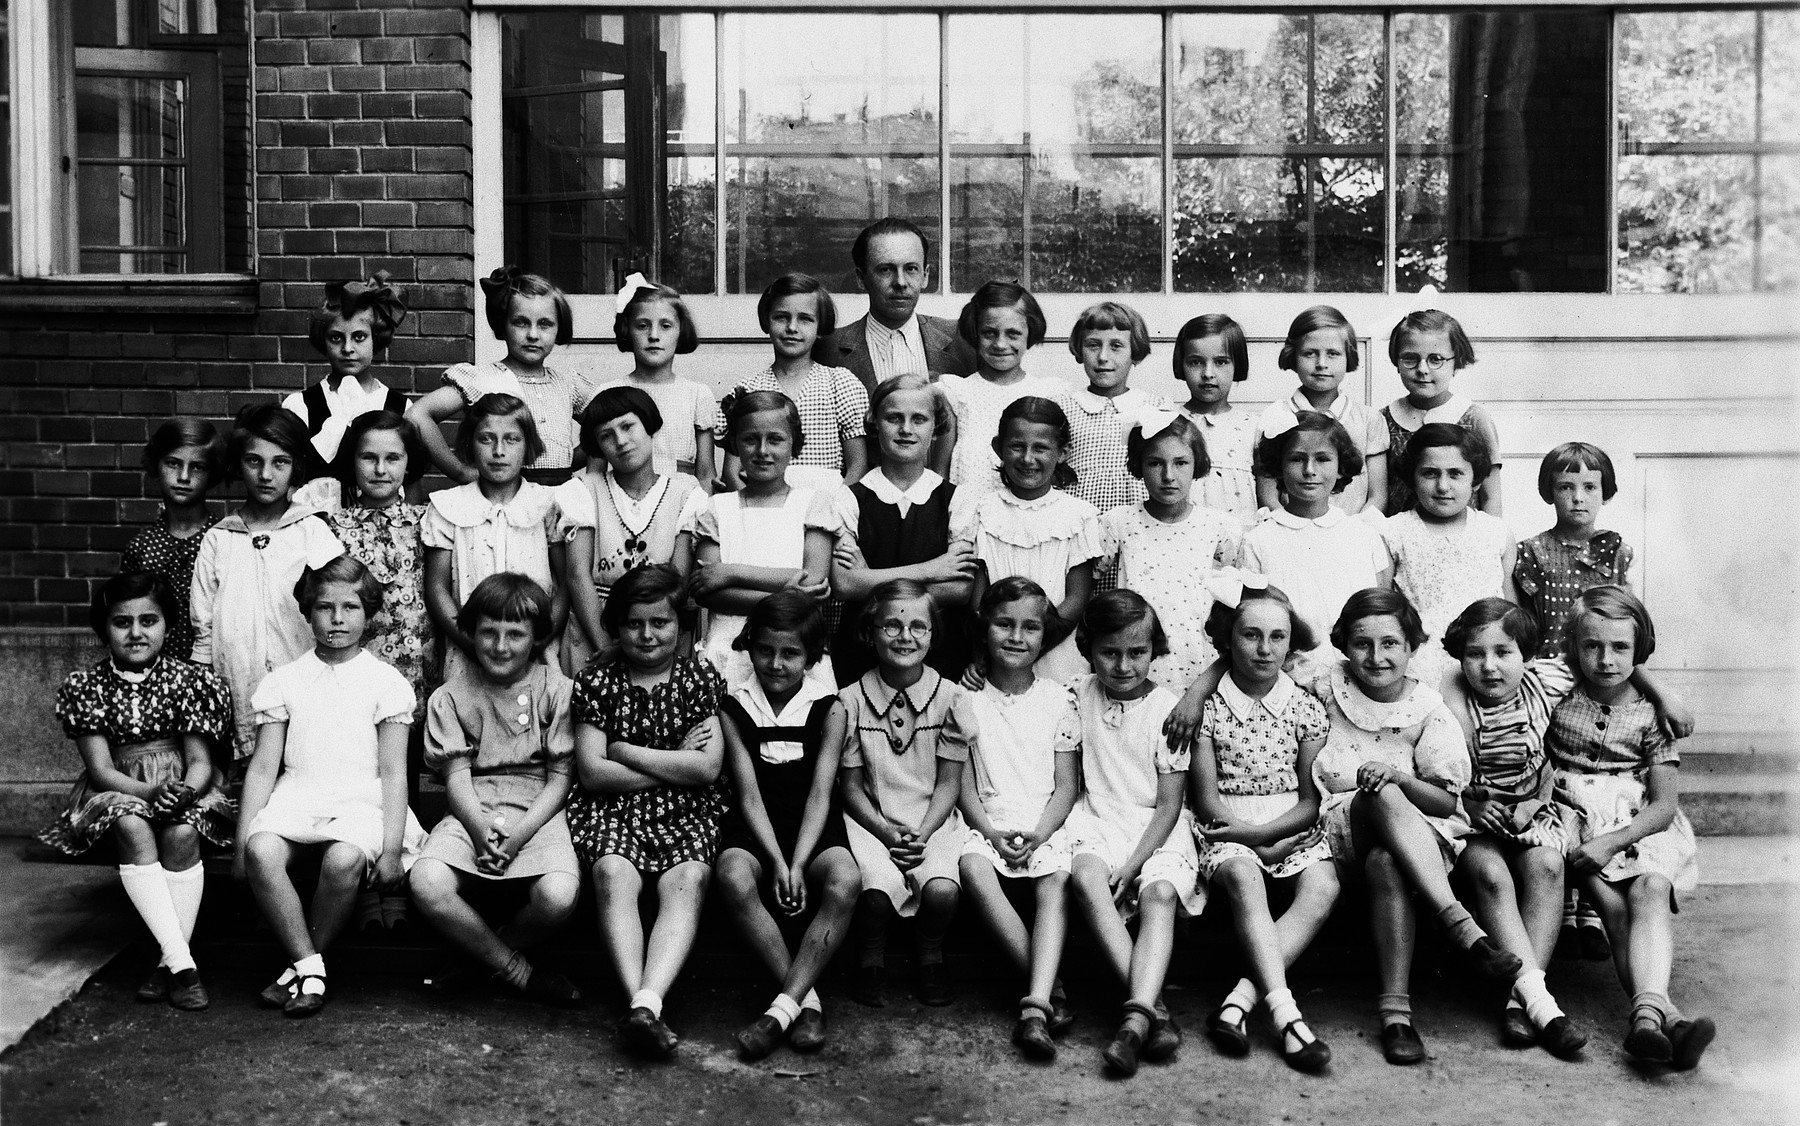 A group portrait of elementary school children in Bratislava.  Kitty Weichherz is sitting in the first row on the far left.  This photo was taken from the diary of Kitty's life written by her father, Bela Weichherz.